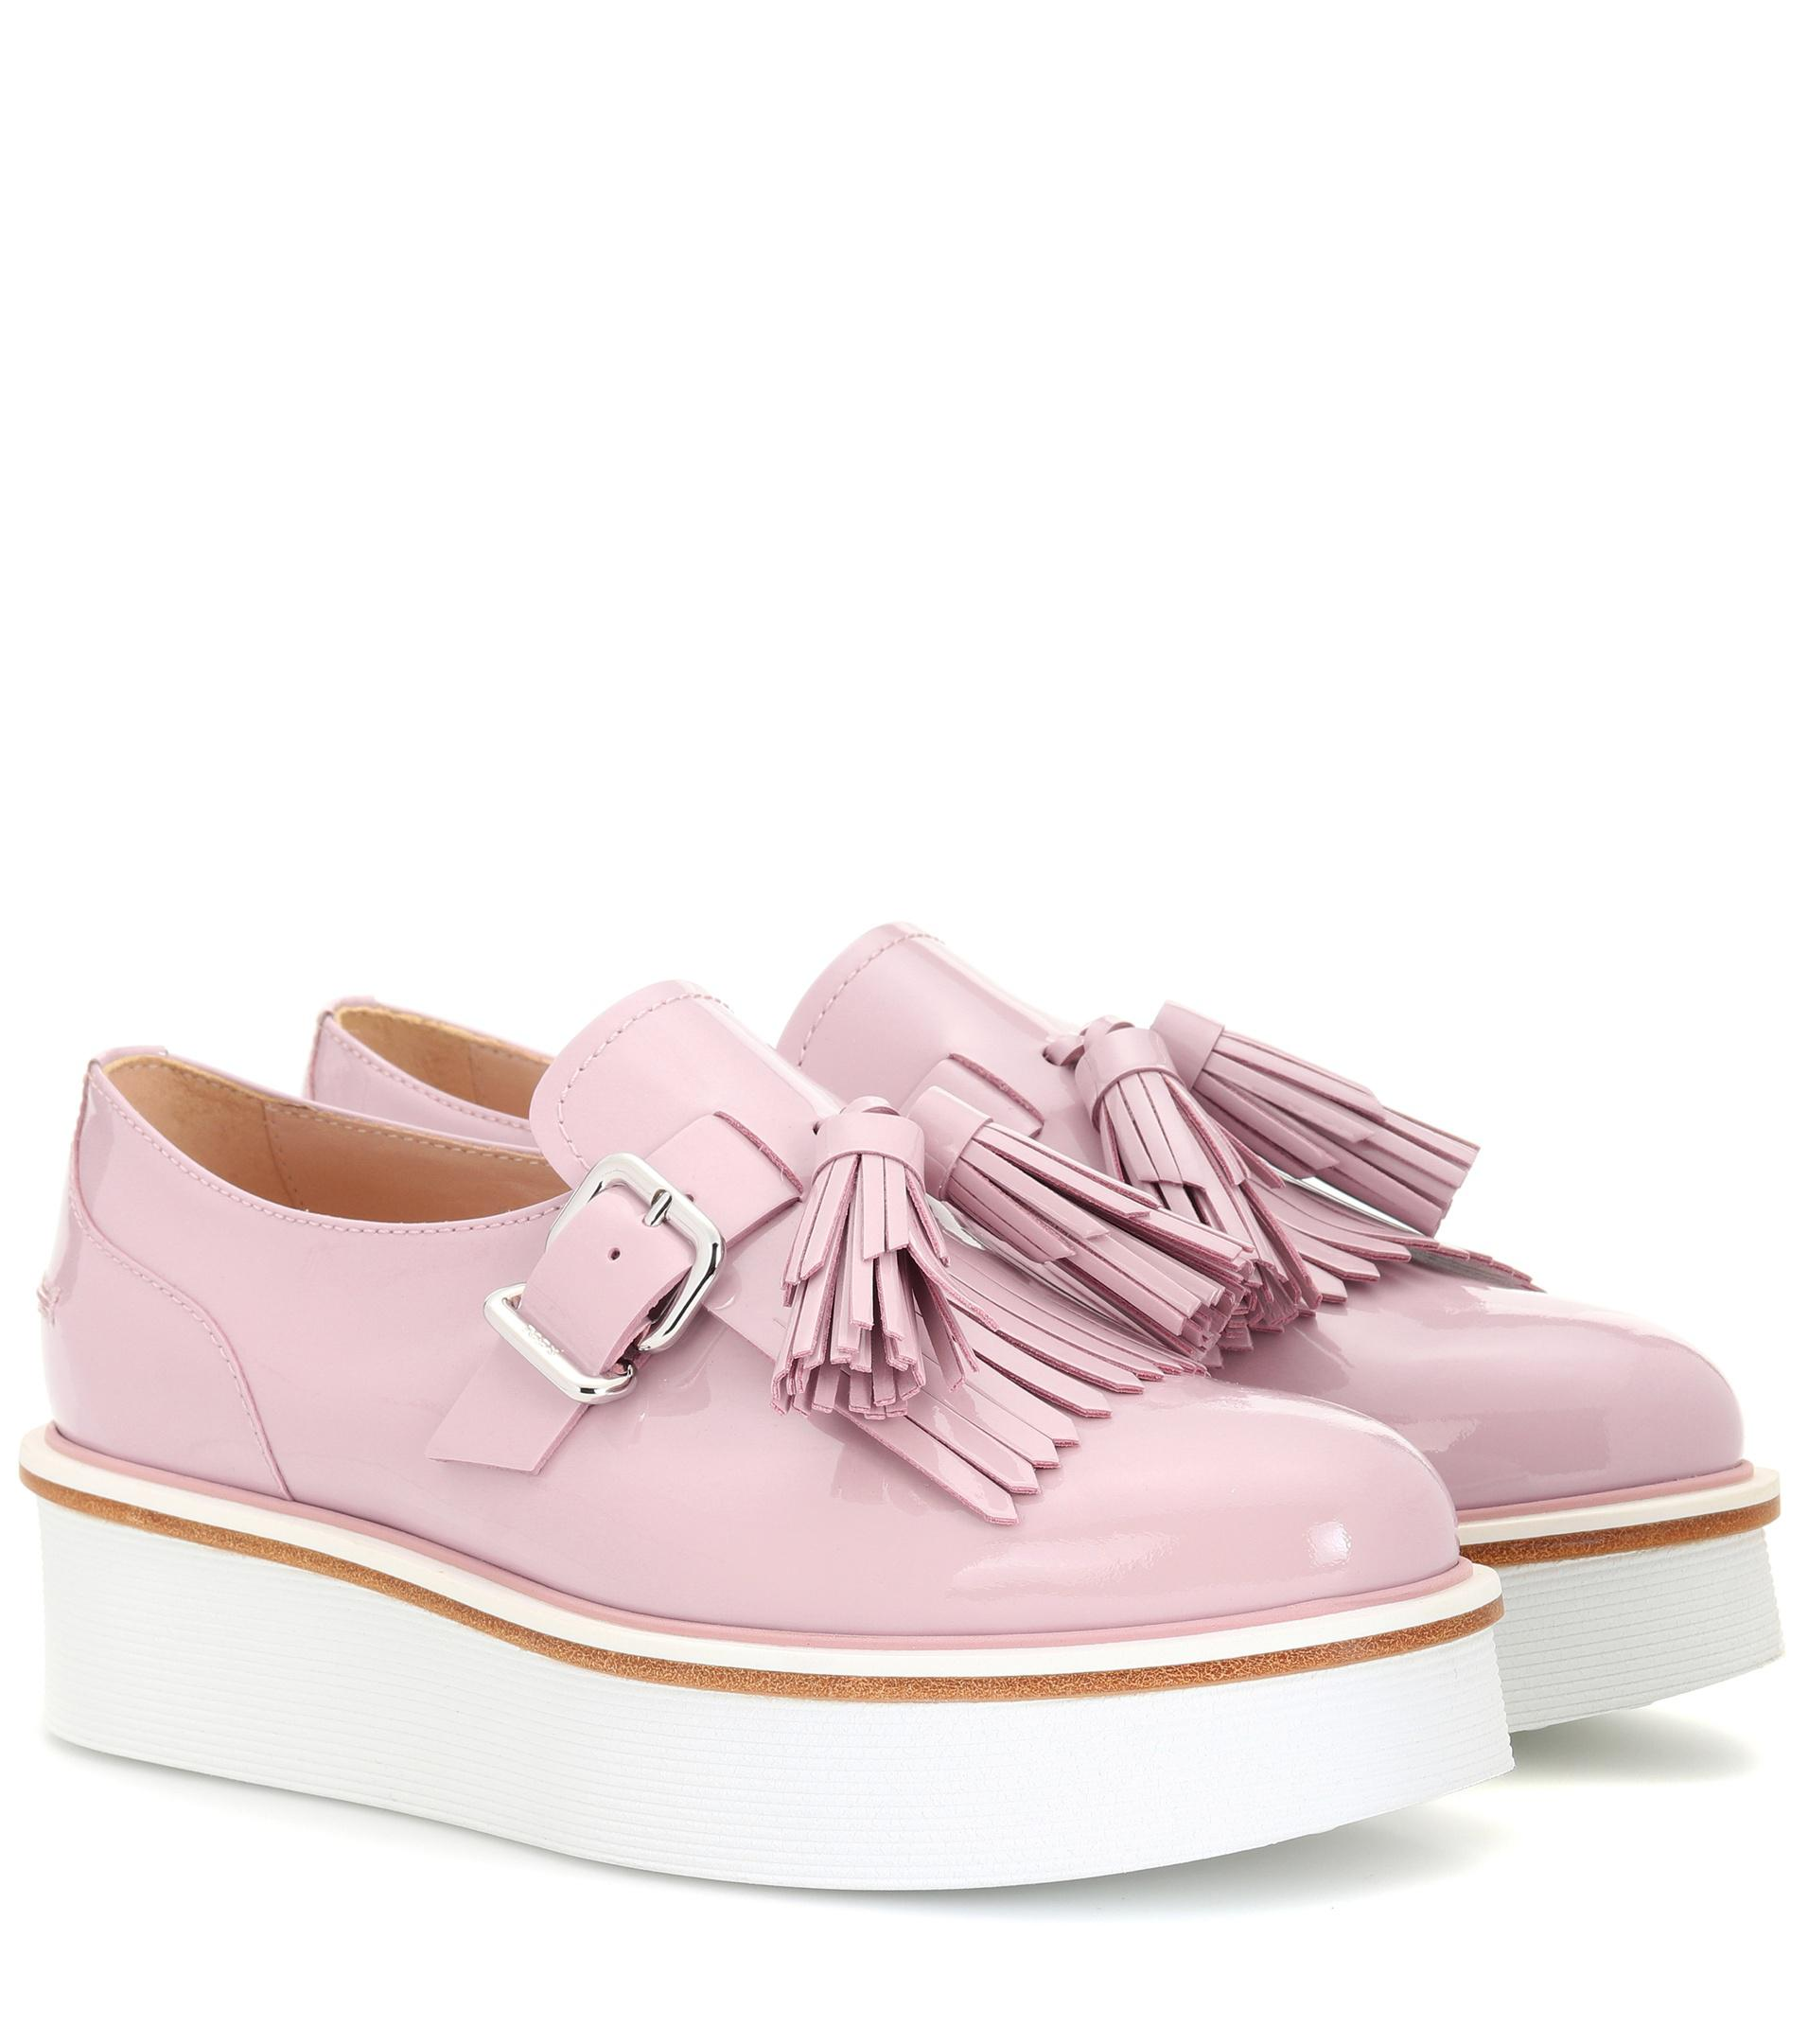 1230c54b7e29 Tod s Leather Platform Loafers in Pink - Lyst